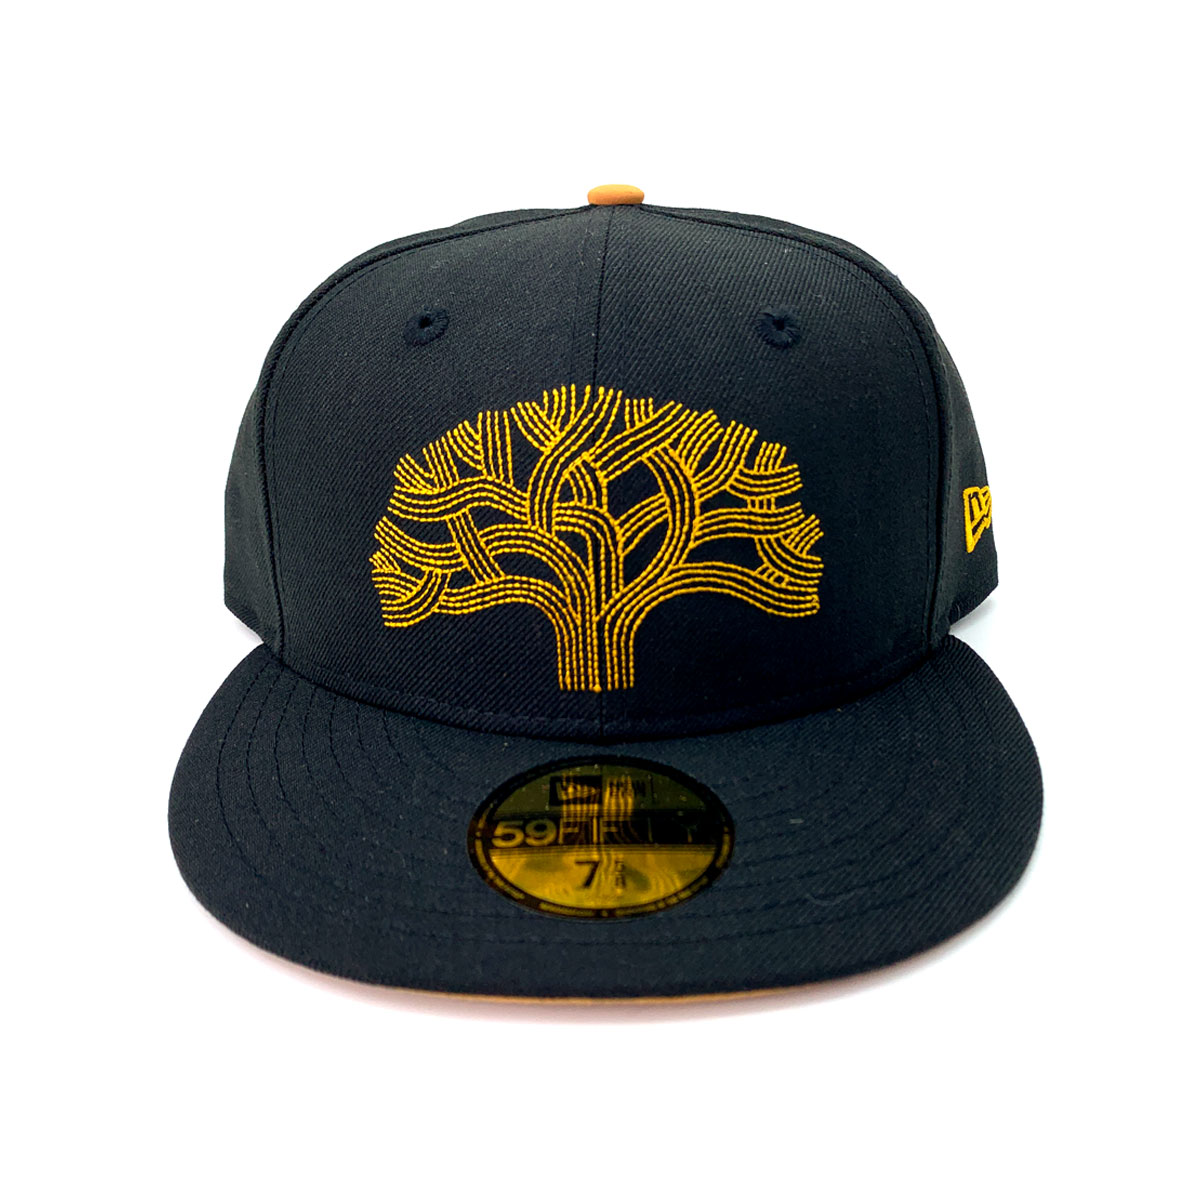 Black Scale Egyptian Star Fitted Hat New Era 59Fifty Mens BLVCK SCVLE